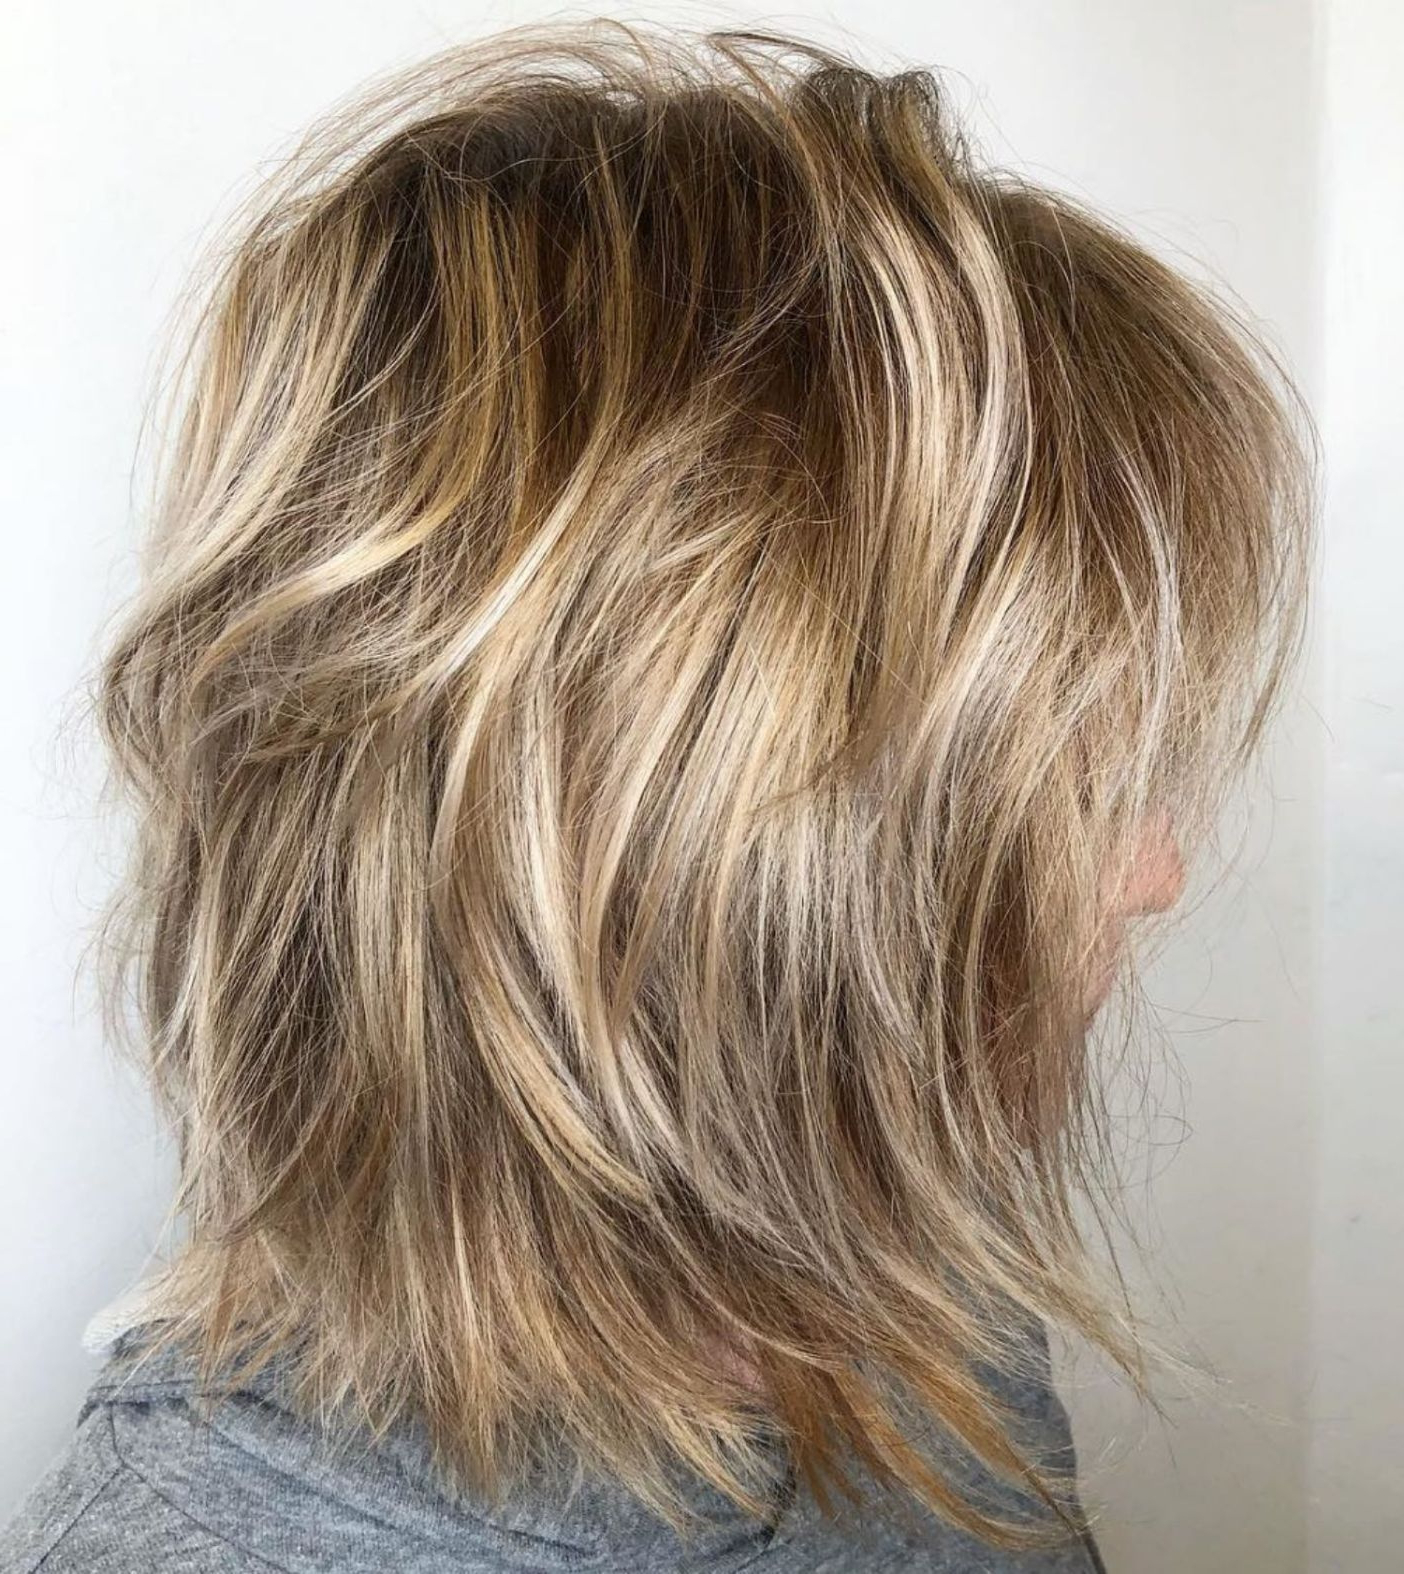 Hairstyles : Shaggy Blonde Bob With Highlights 40 Throughout Short Highlighted Shaggy Haircuts (View 13 of 20)